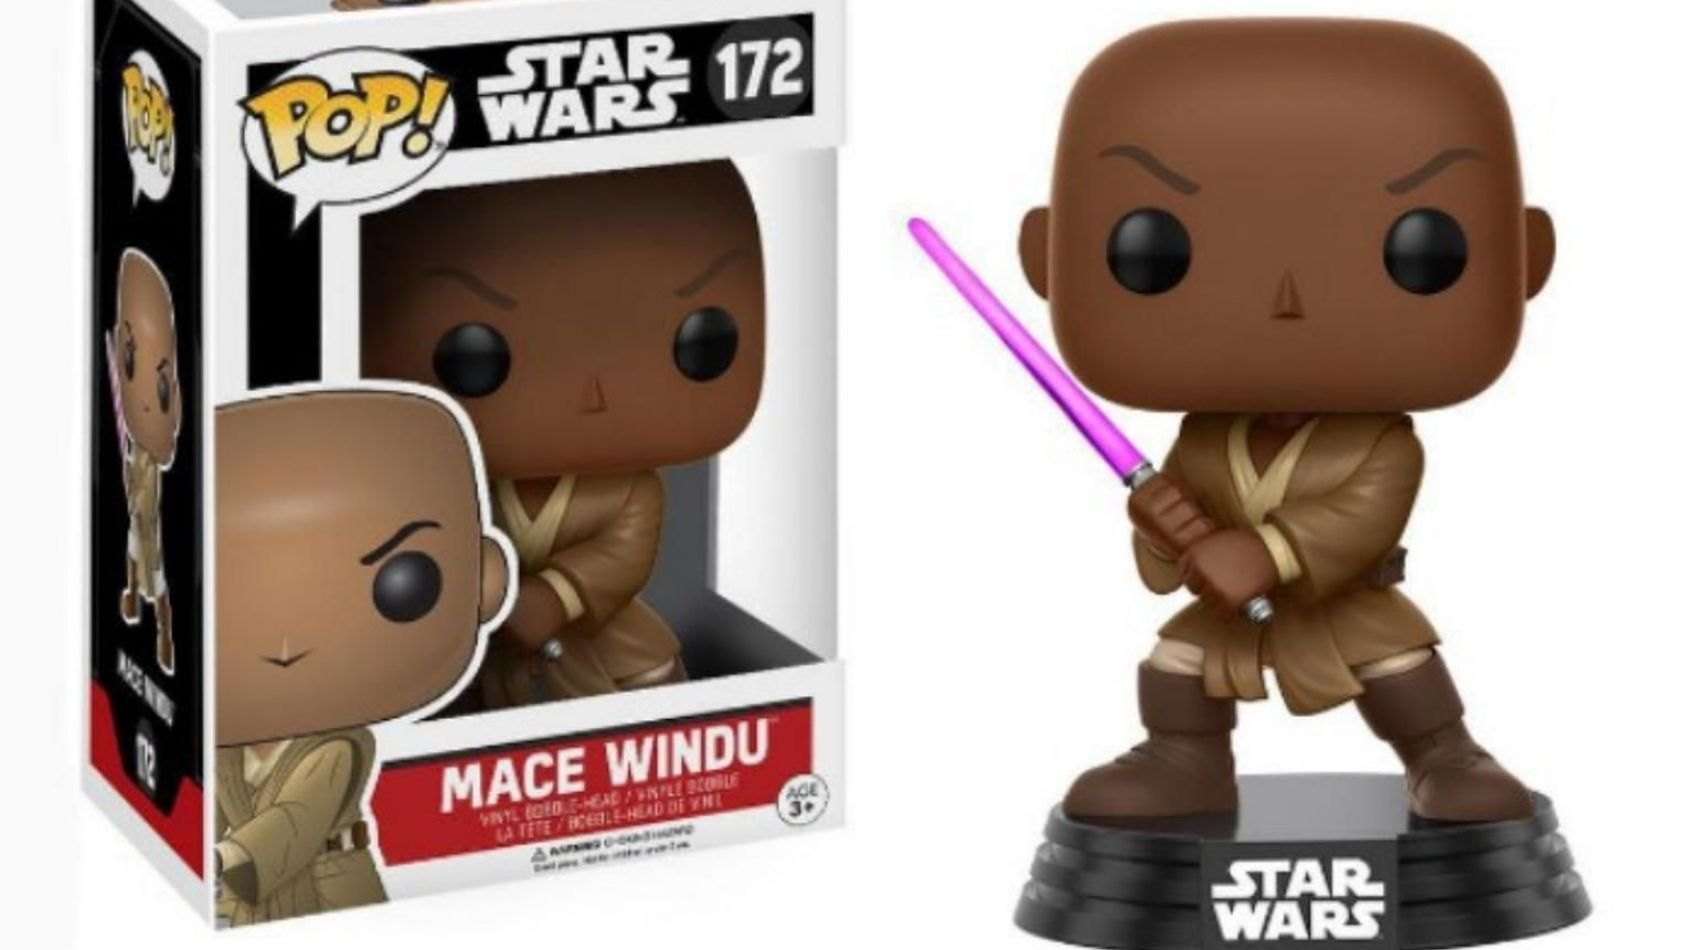 Une Funko Pop exclusive de Mace Windu au Comic Con de Londres